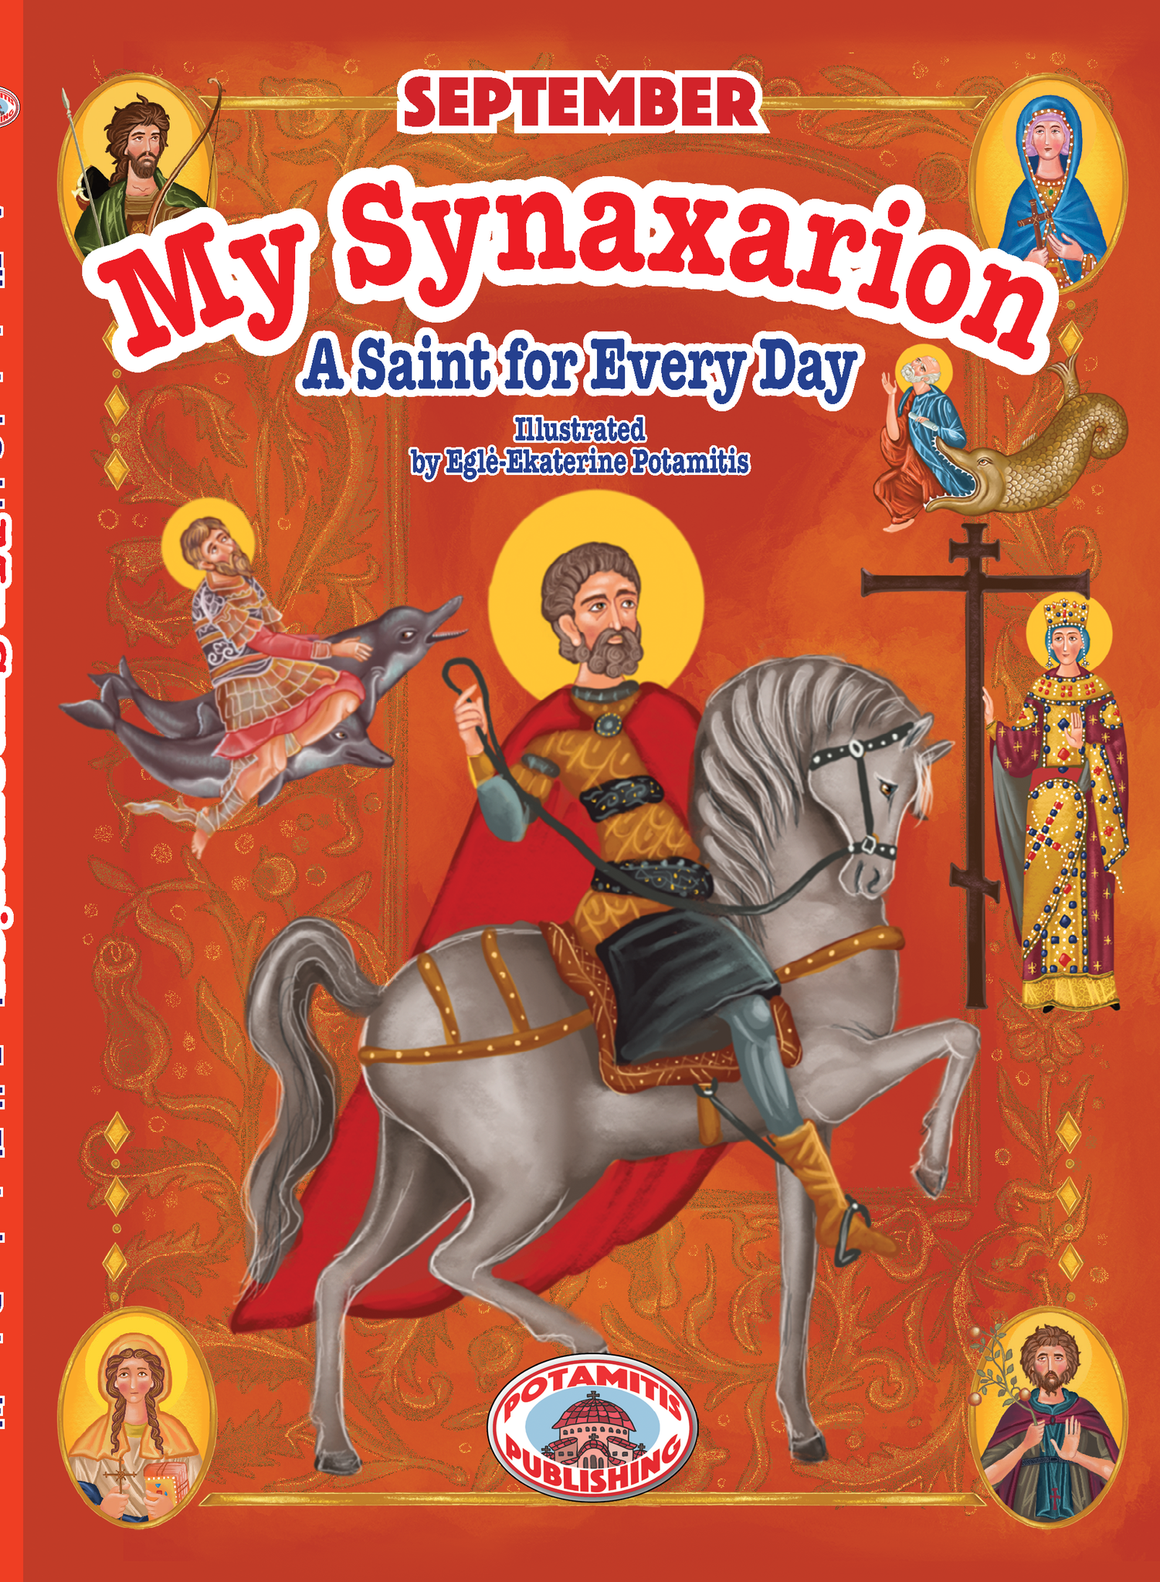 My Synaxarion - A Saint for Every Day [September]